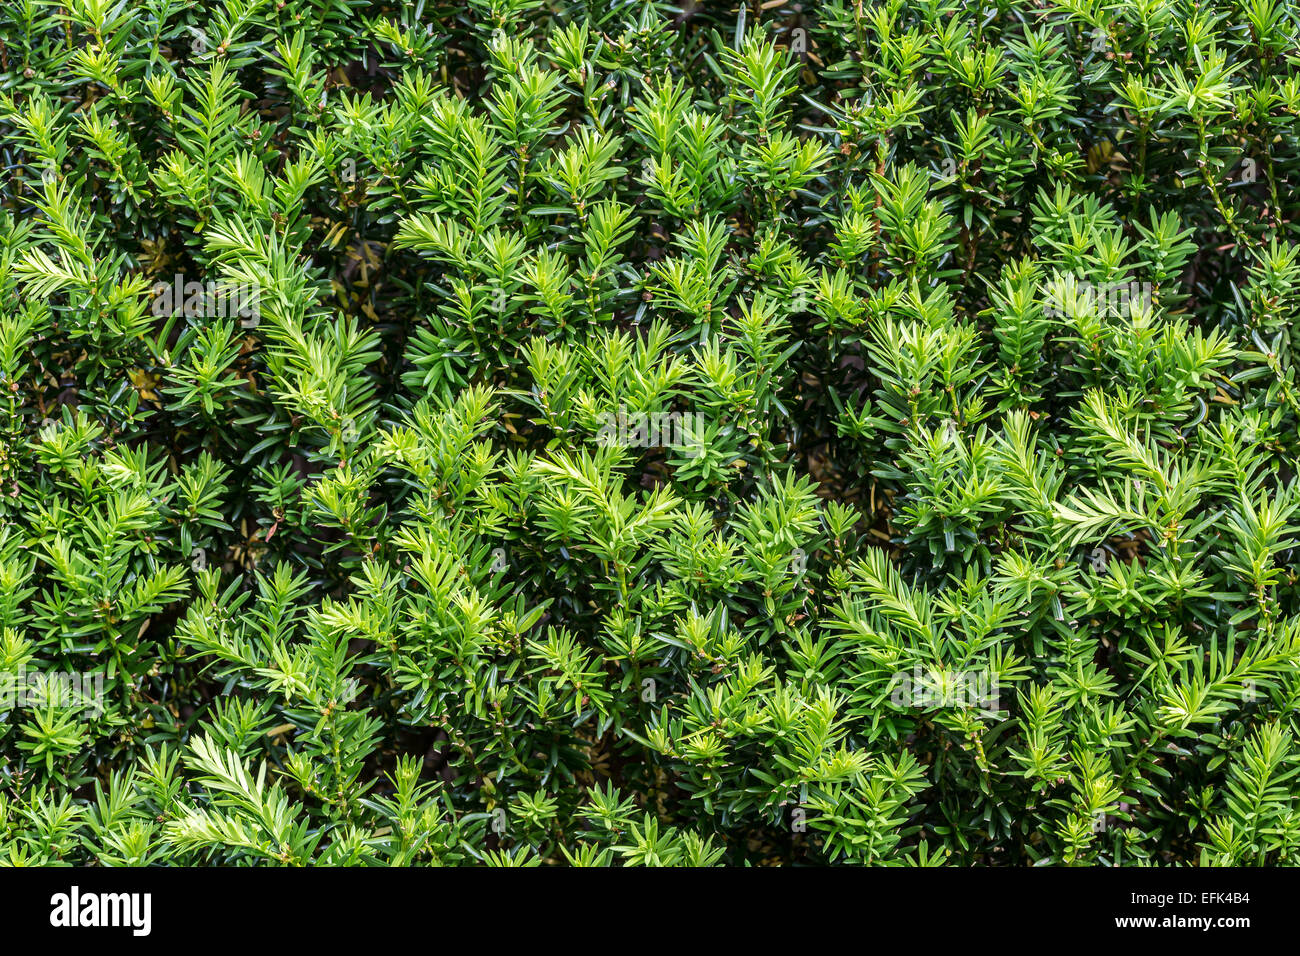 Close up of foliage of a beautiful yew hedge. - Stock Image